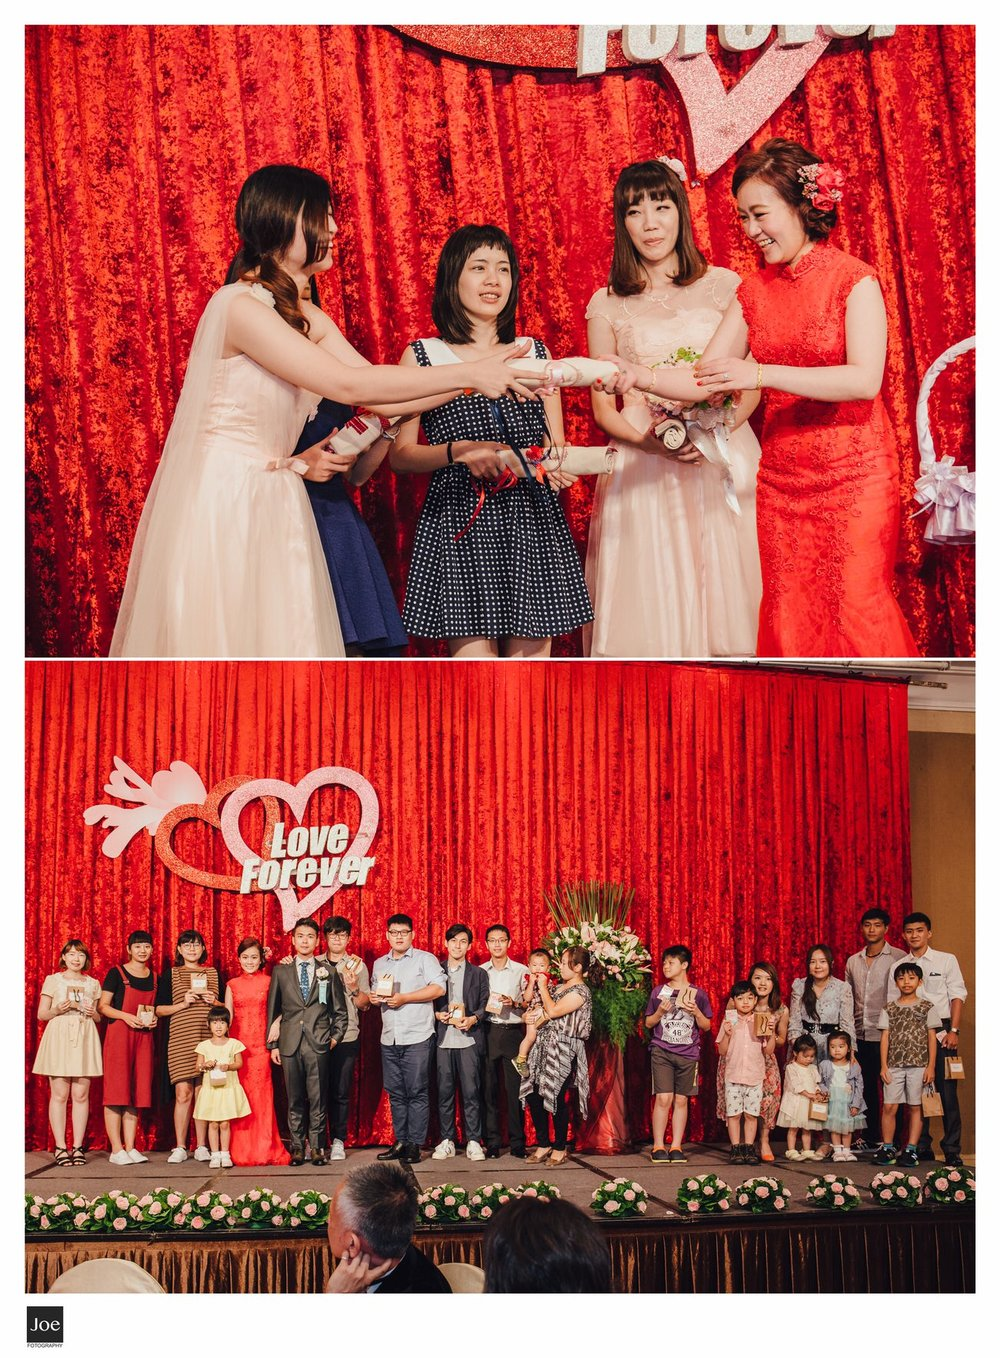 sunworld-dynasty-hotel-taipei-wedding-photo-joe-fotography-angel-jay-104.jpg